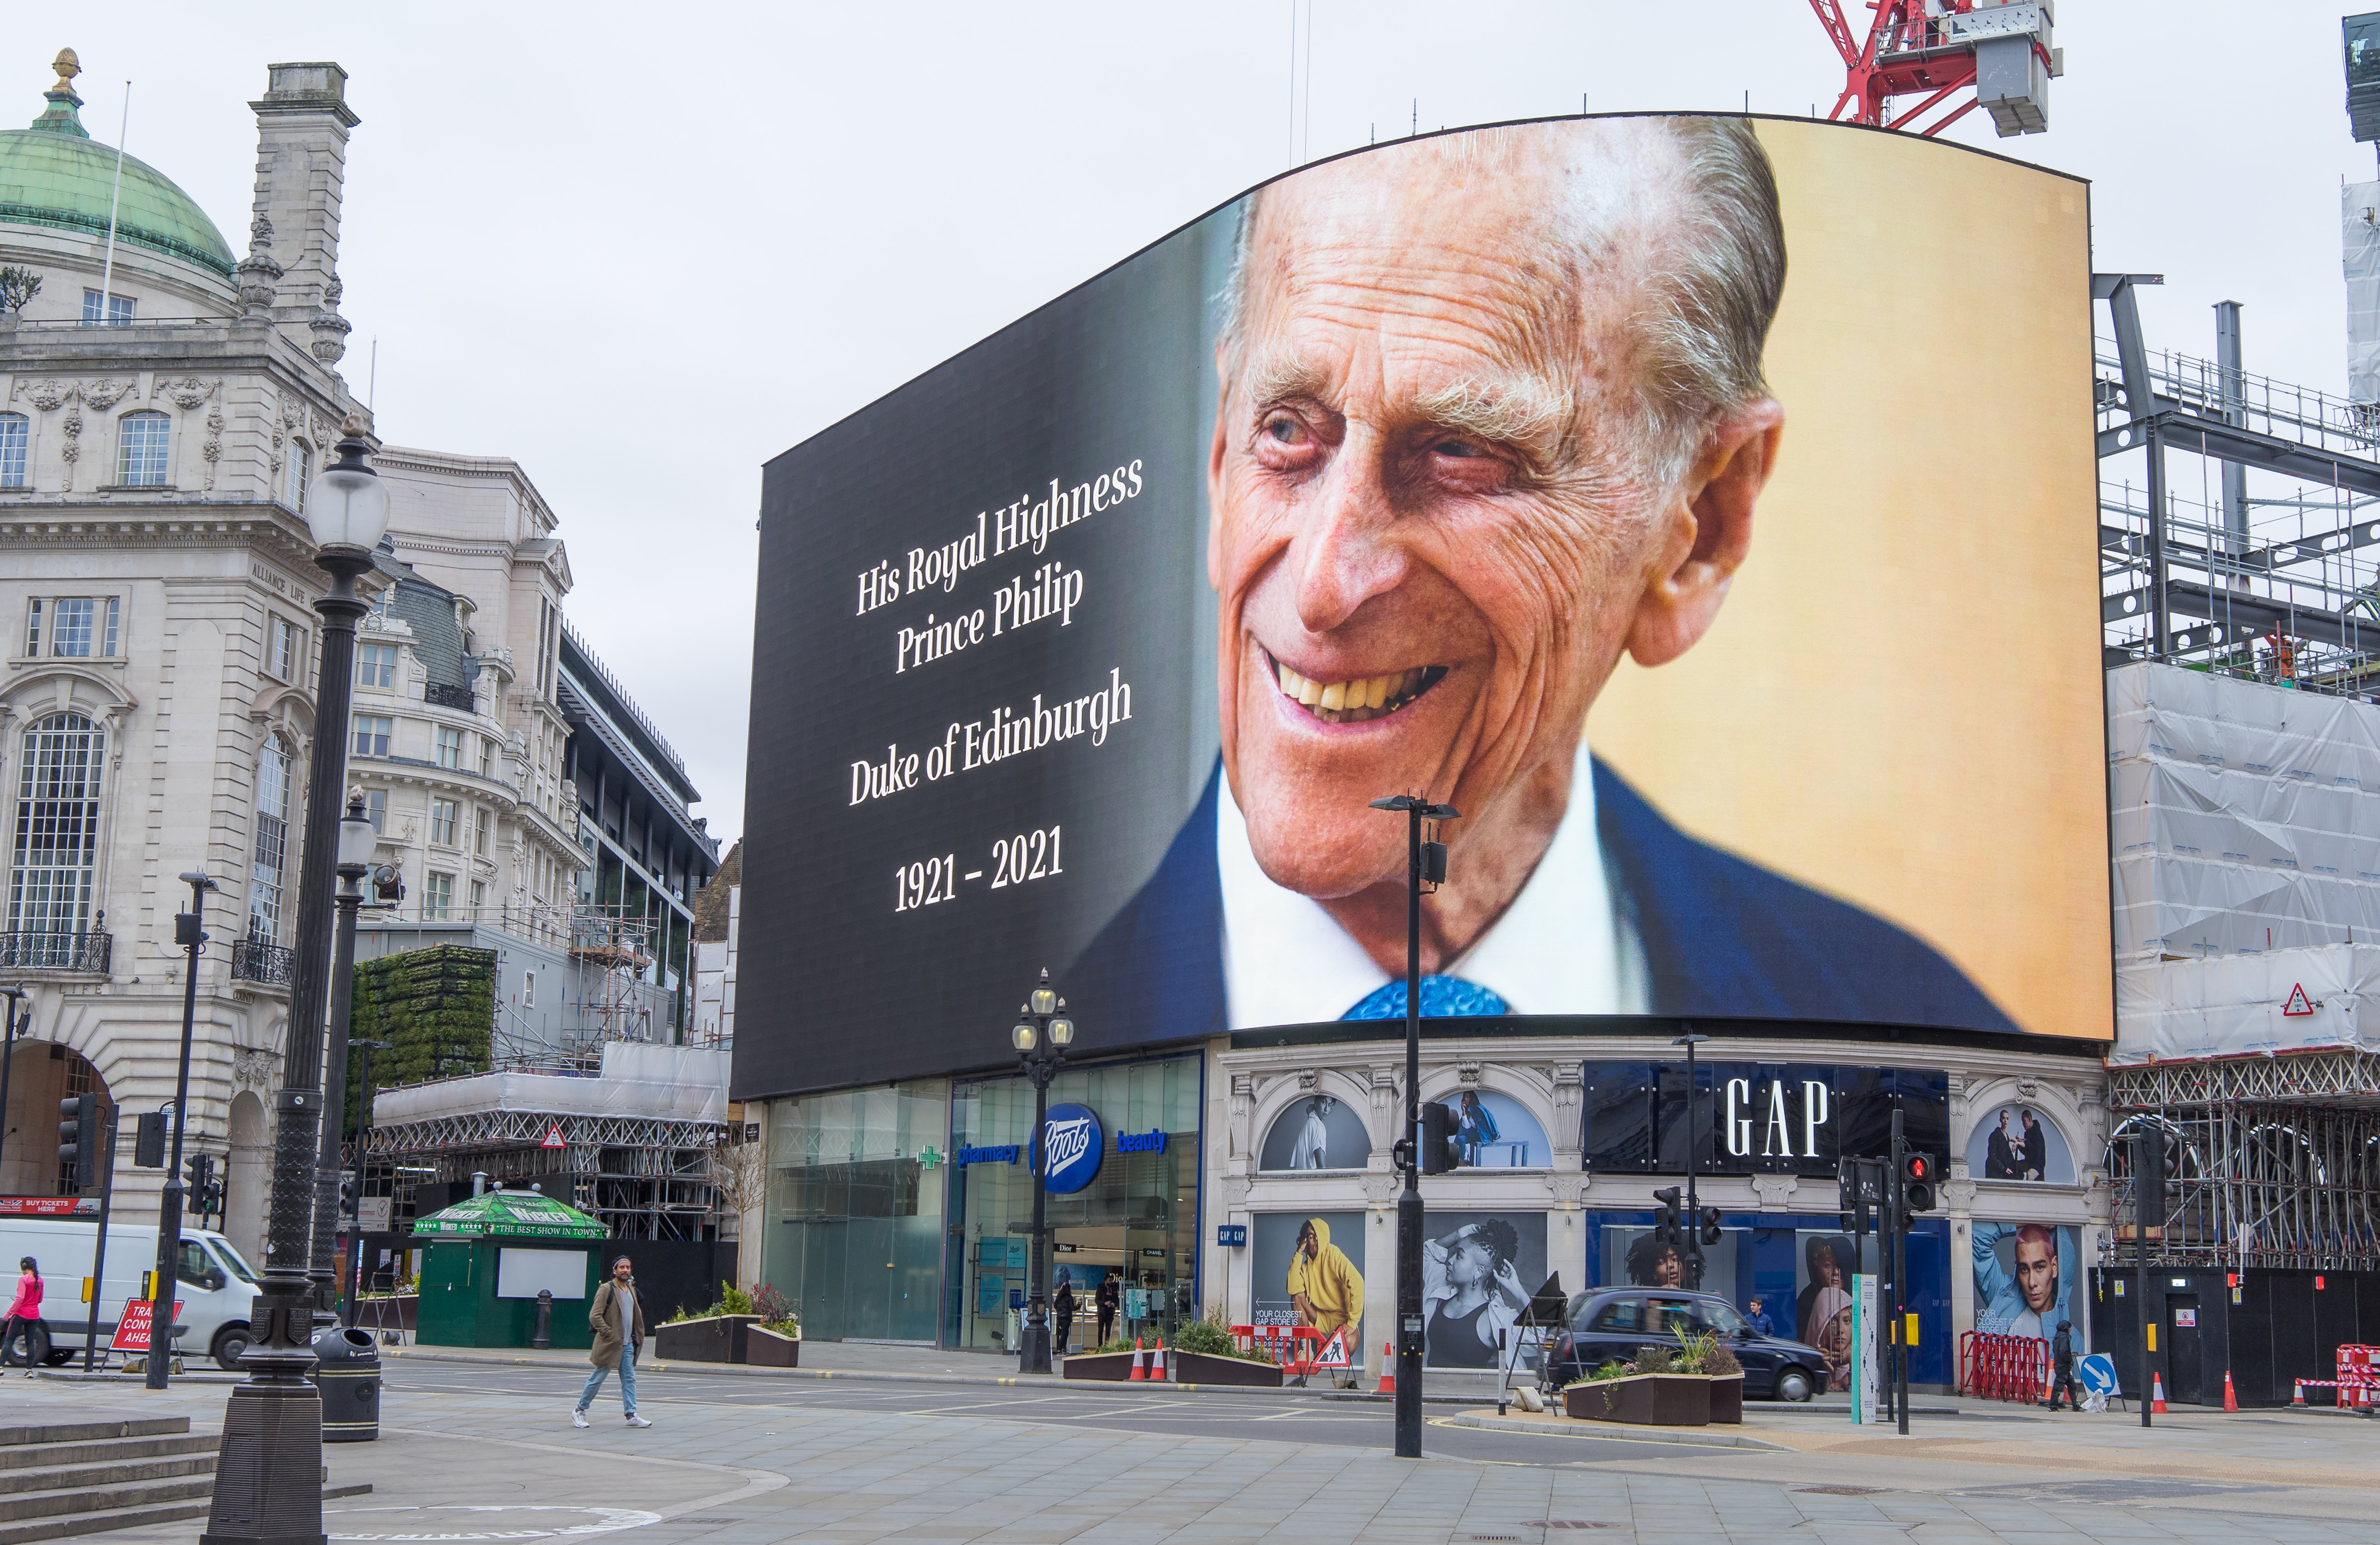 Piccadilly Circus paying respect to Prince Philip following the announcement of his death on April 10, 2021, London | Photo: Shutterstock